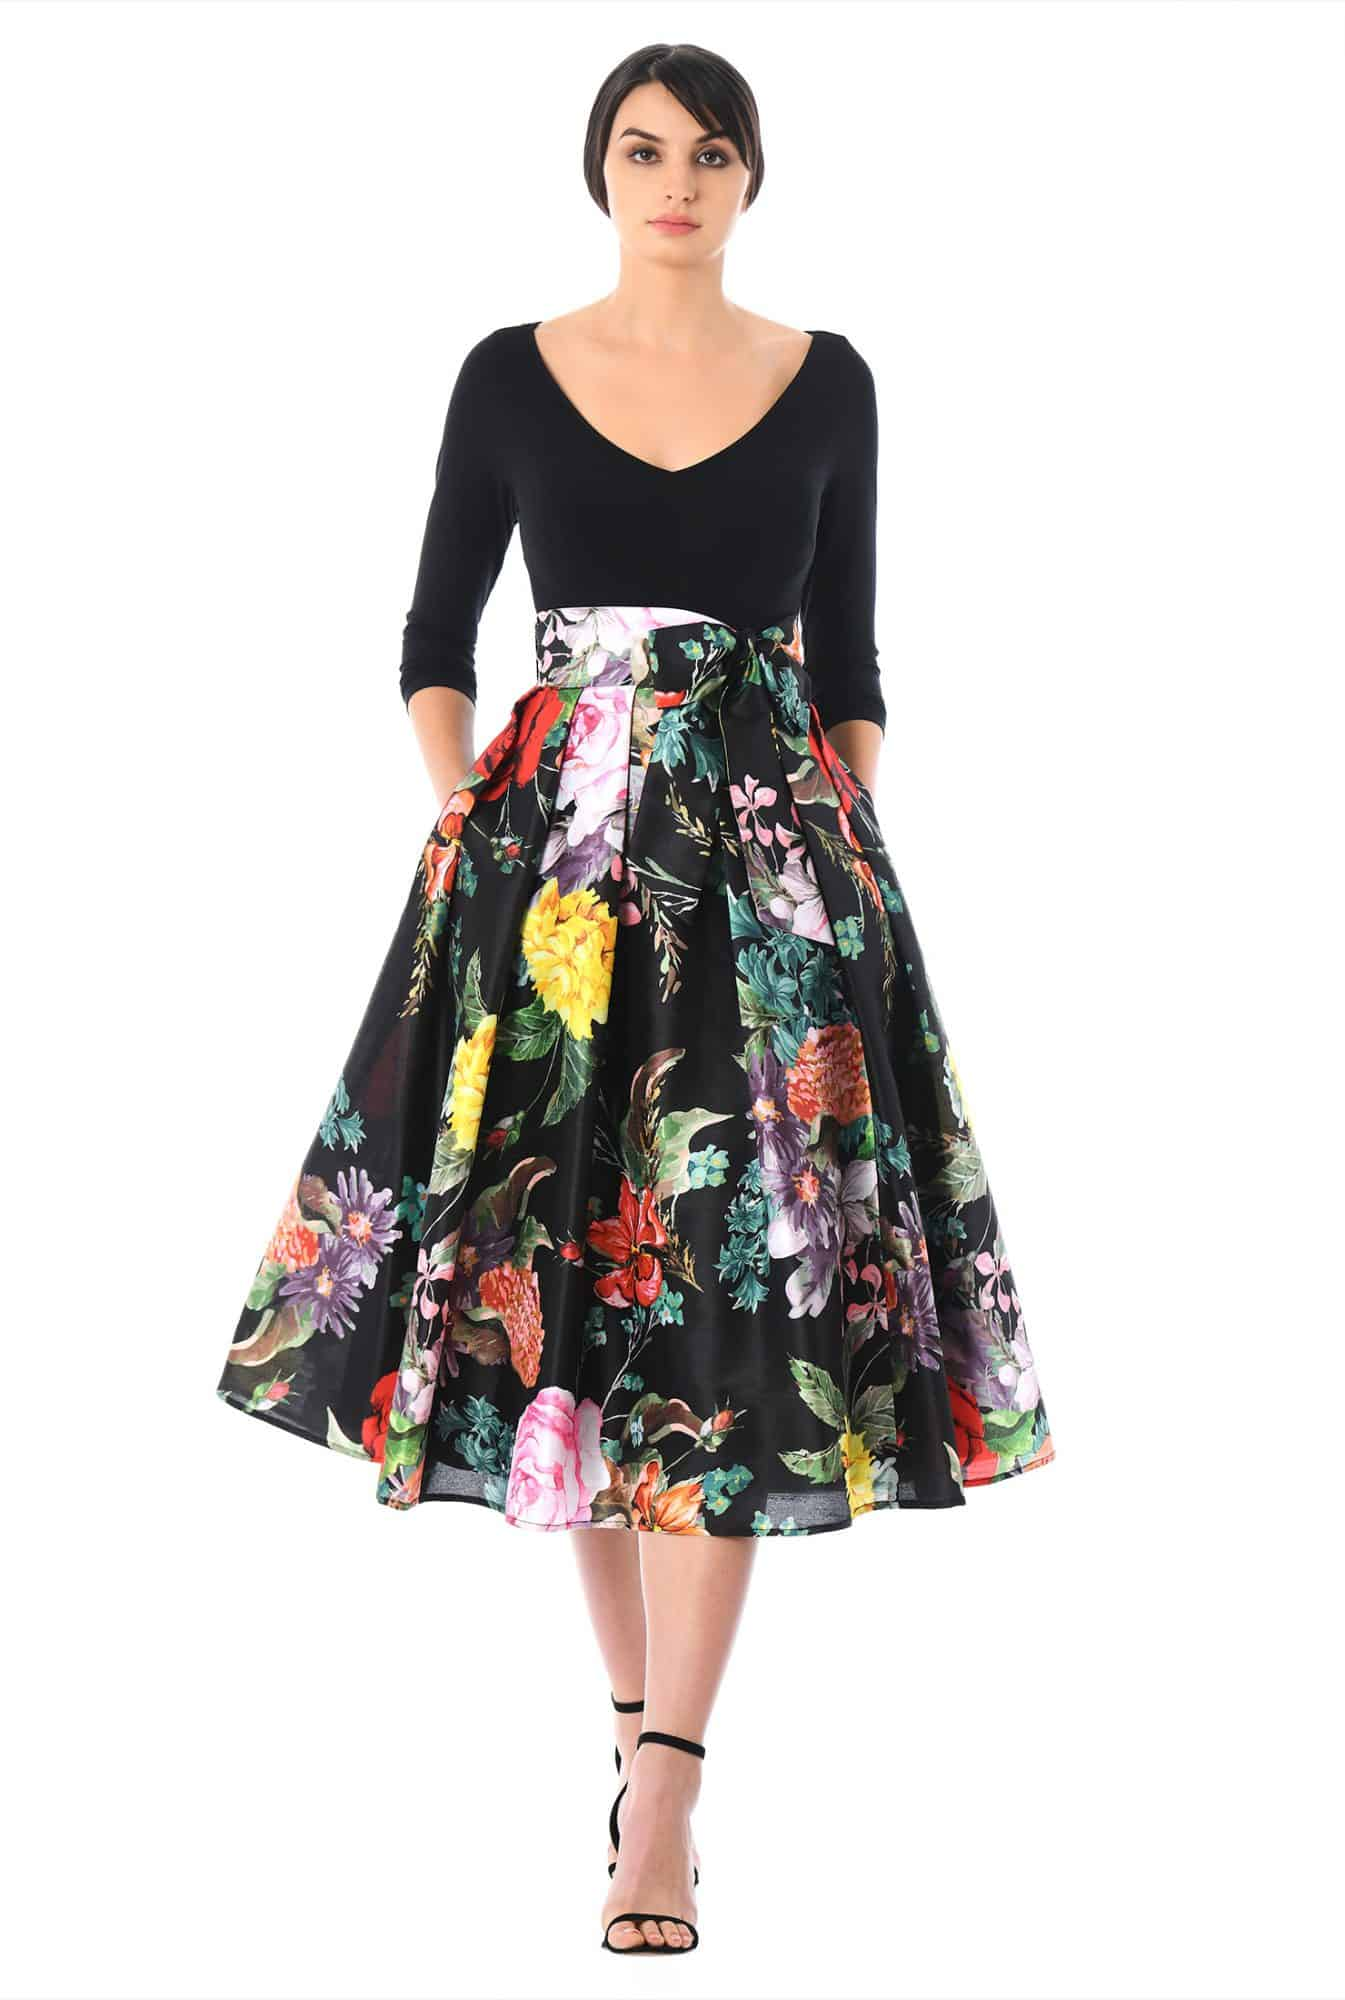 From Church To Wedding To Black Tie Event: Getting Dressy. An eShakti party dress with floral skirt and solid black top